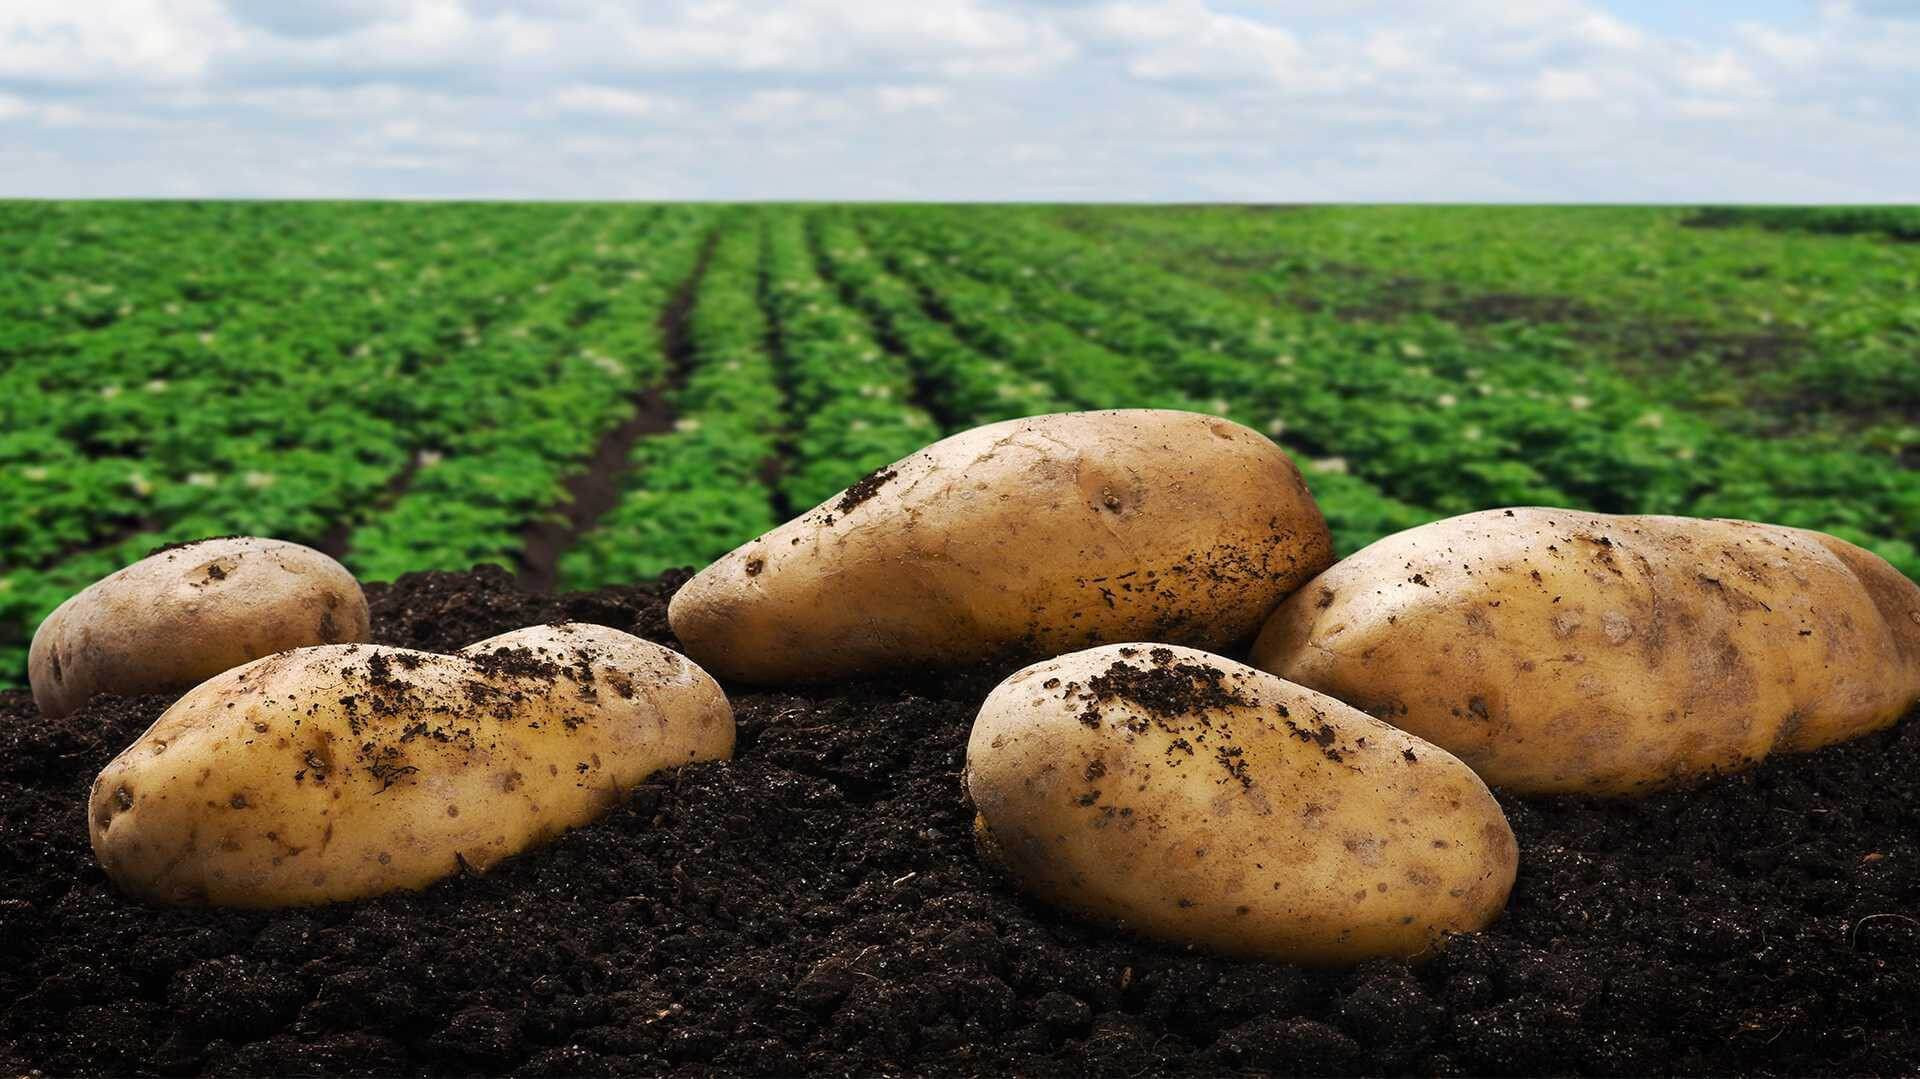 History Of The Potato  Prepared Potato Products The History of Potatoes